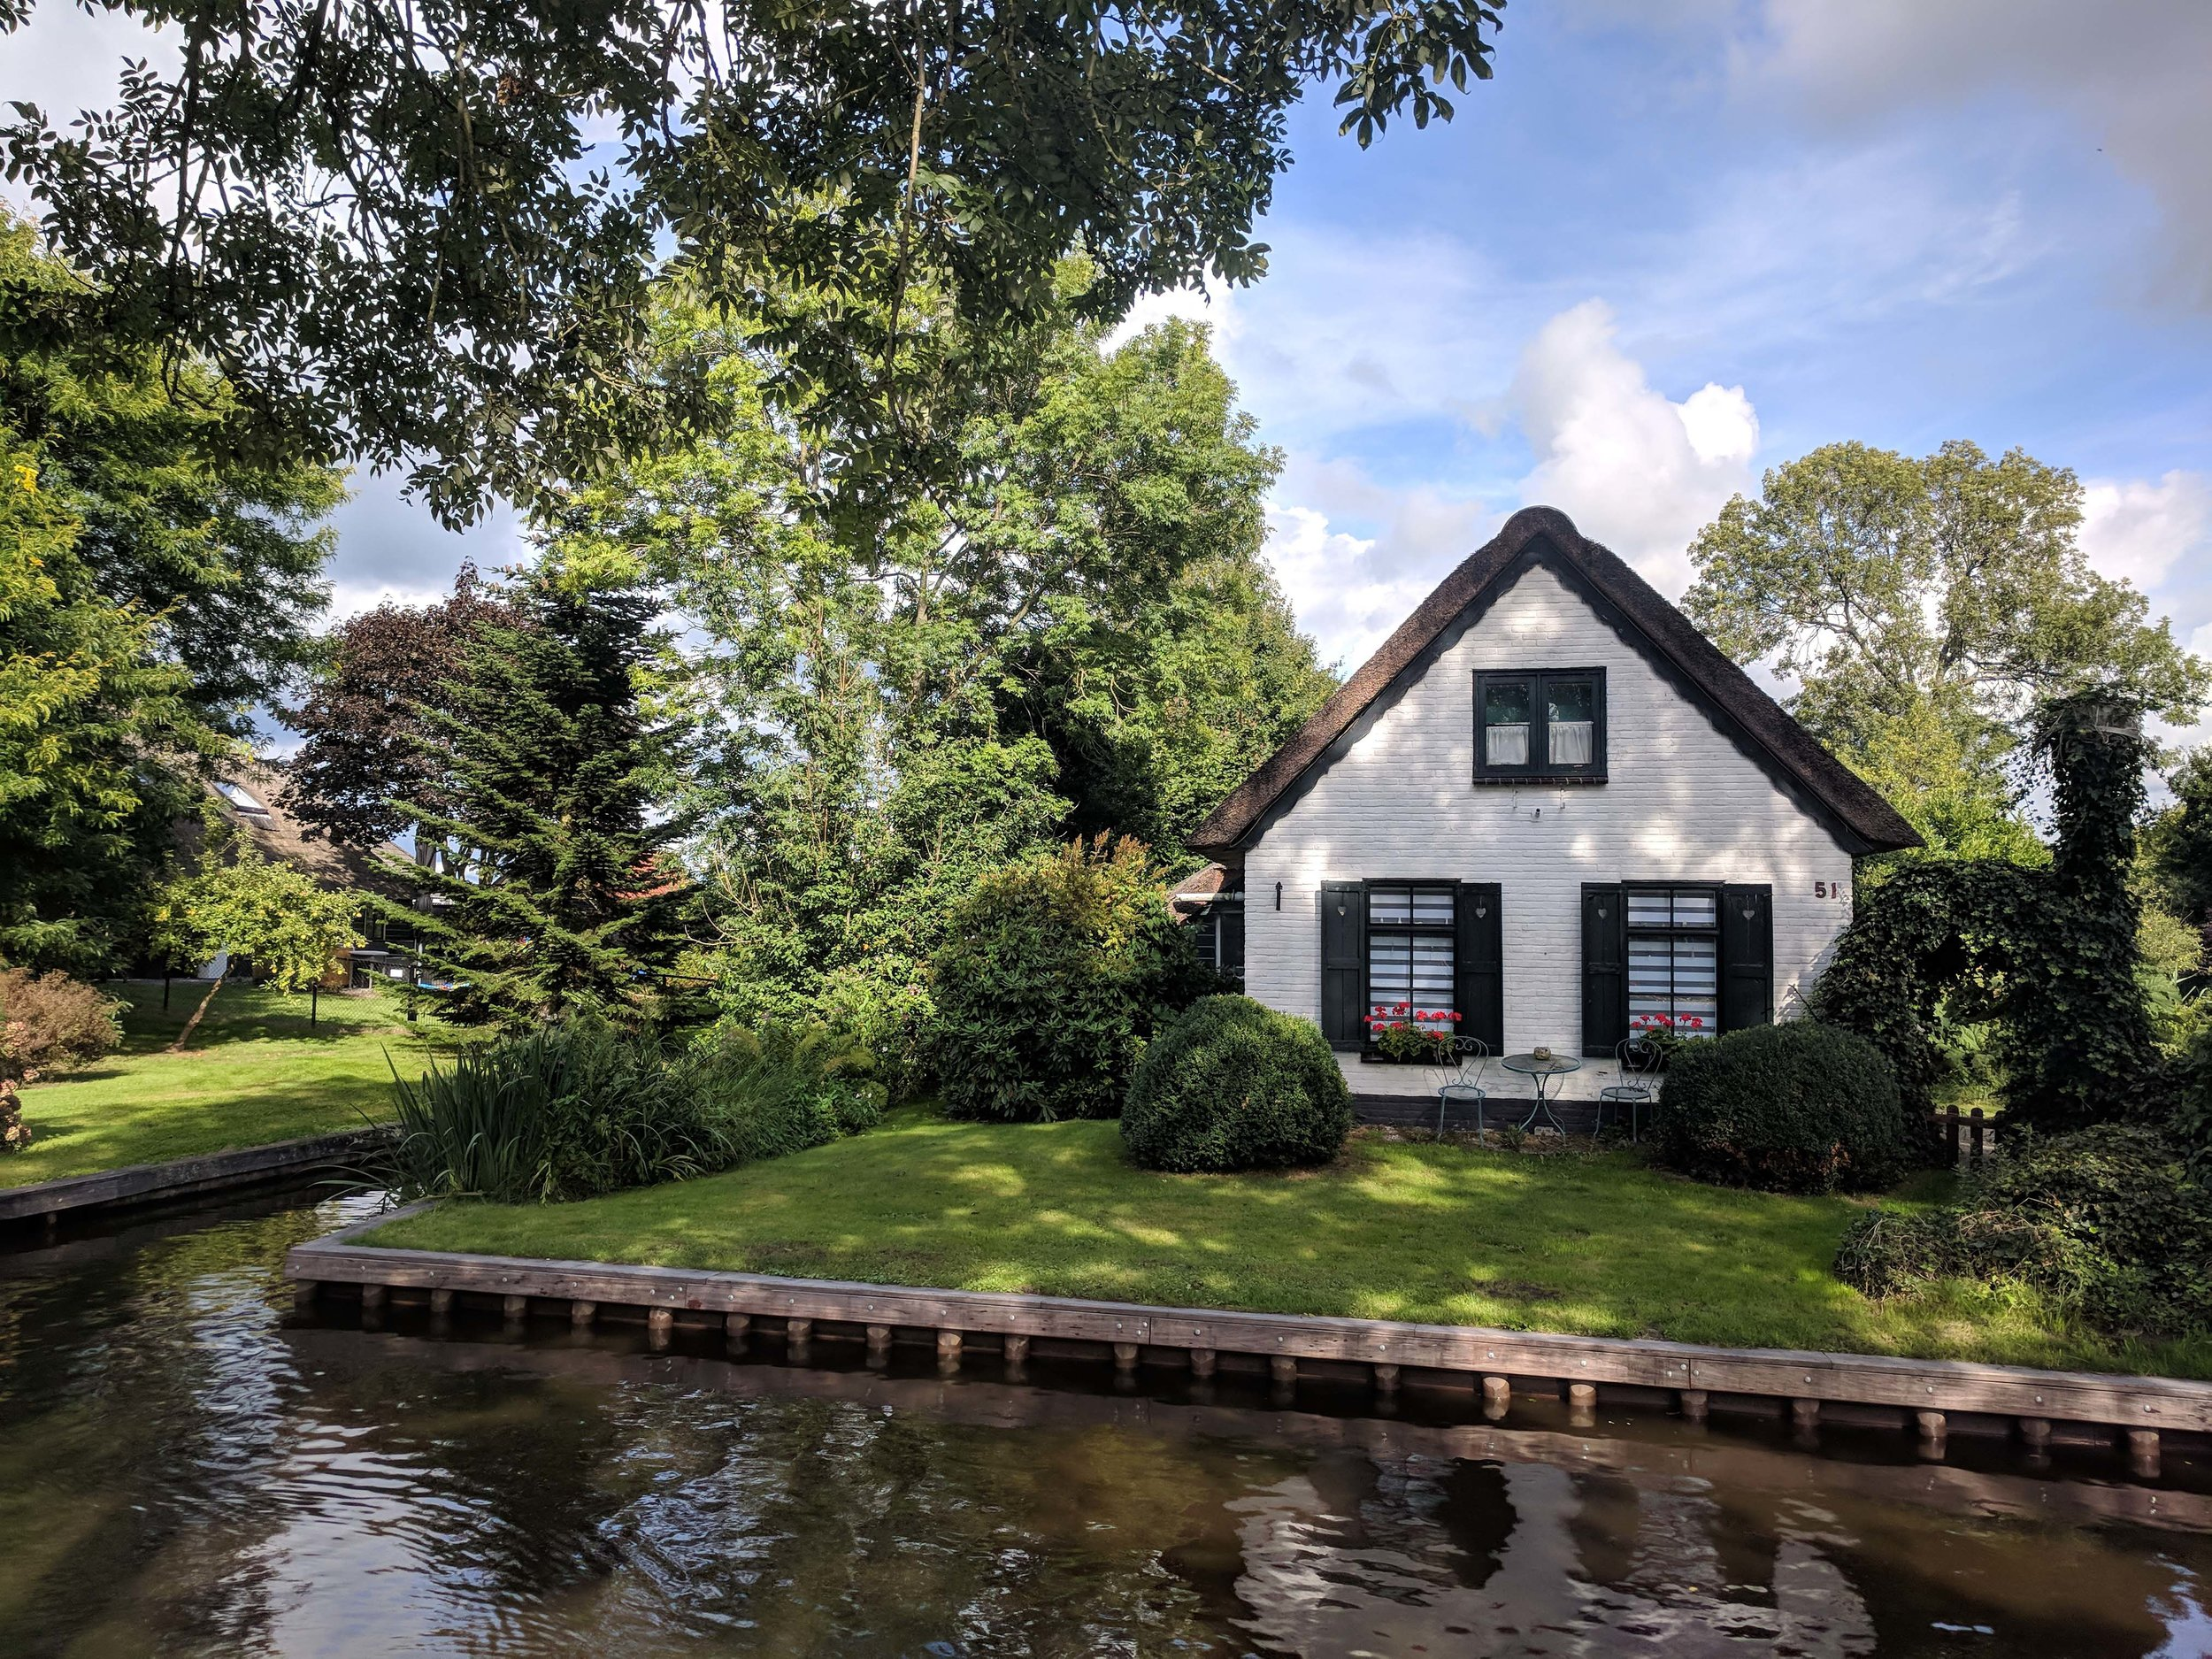 Giethoorn, one of the most scenic places we have stayed so far